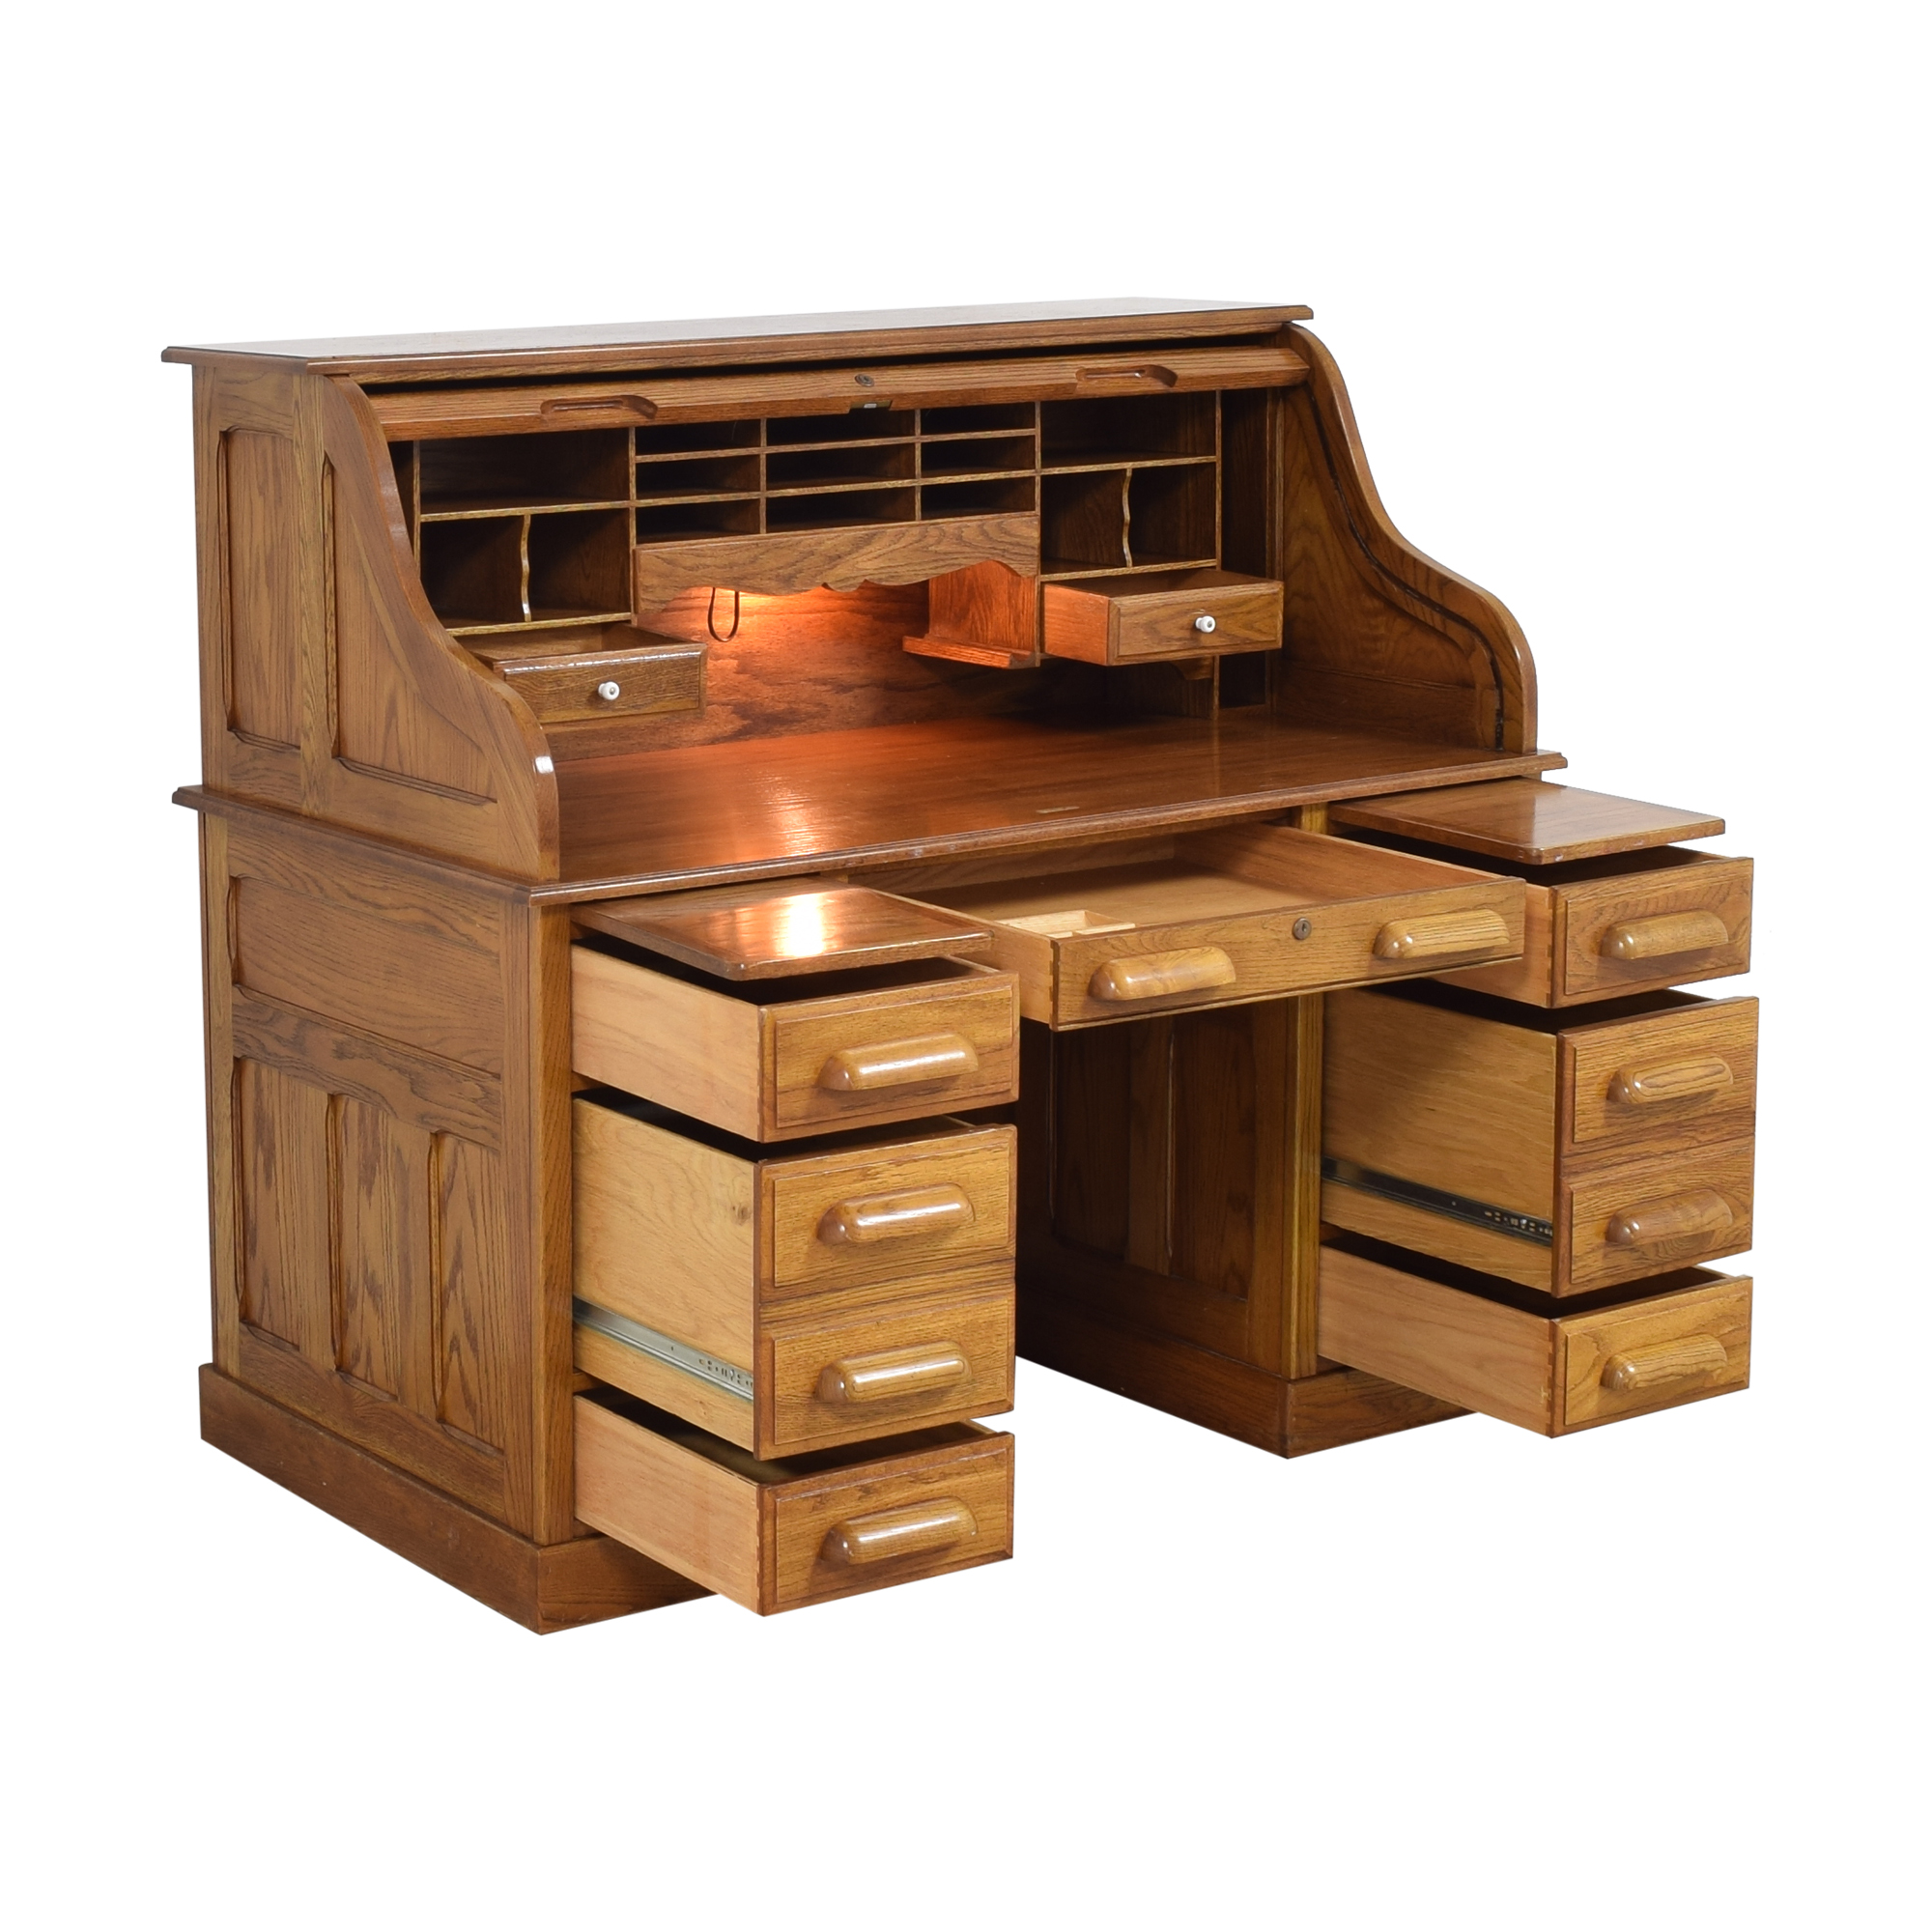 buy Mount Airy National Mount Airy Roll Top Desk online